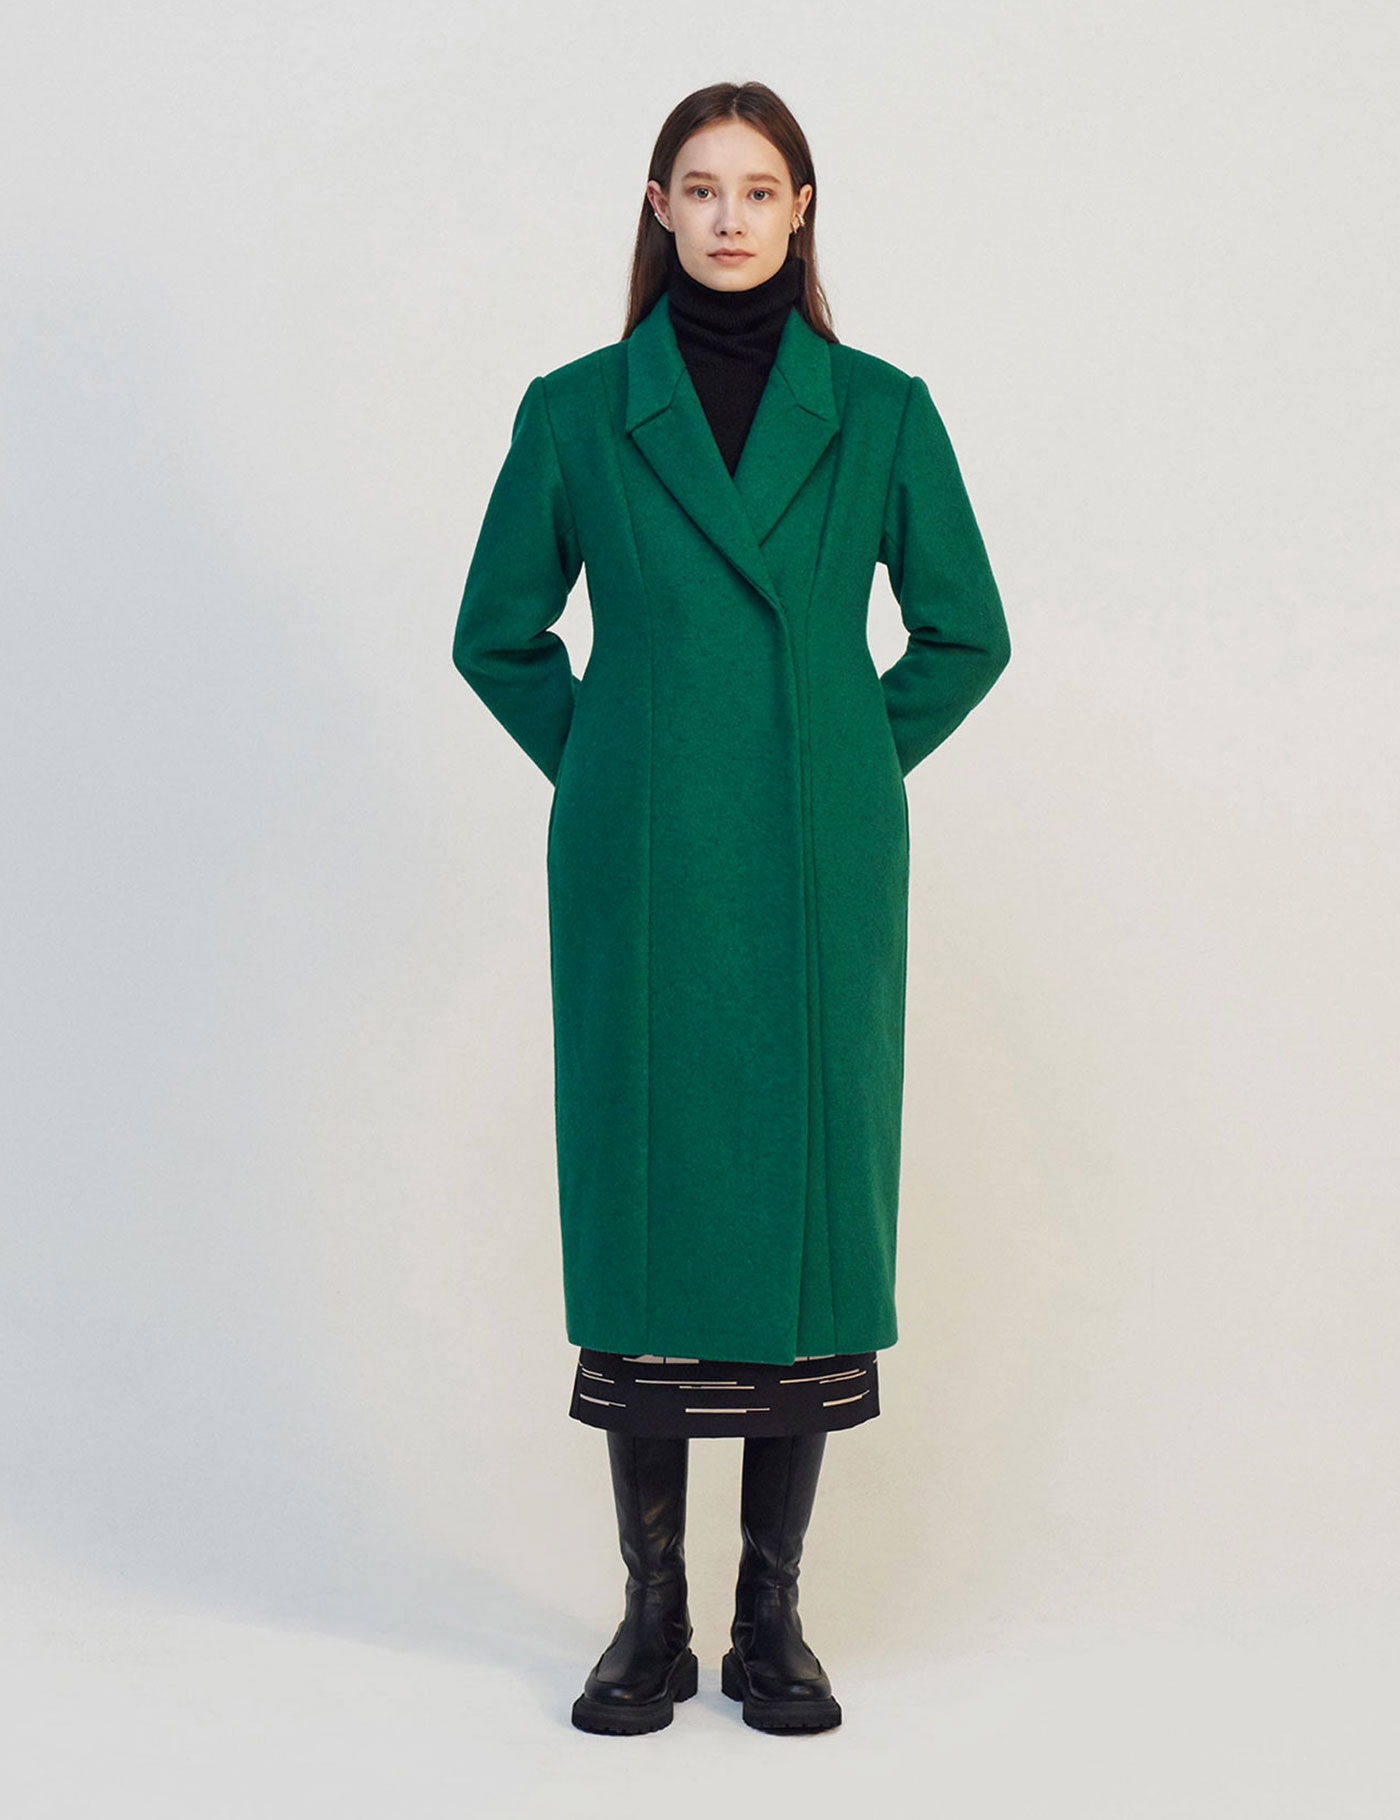 CHARETTE WOOL COAT